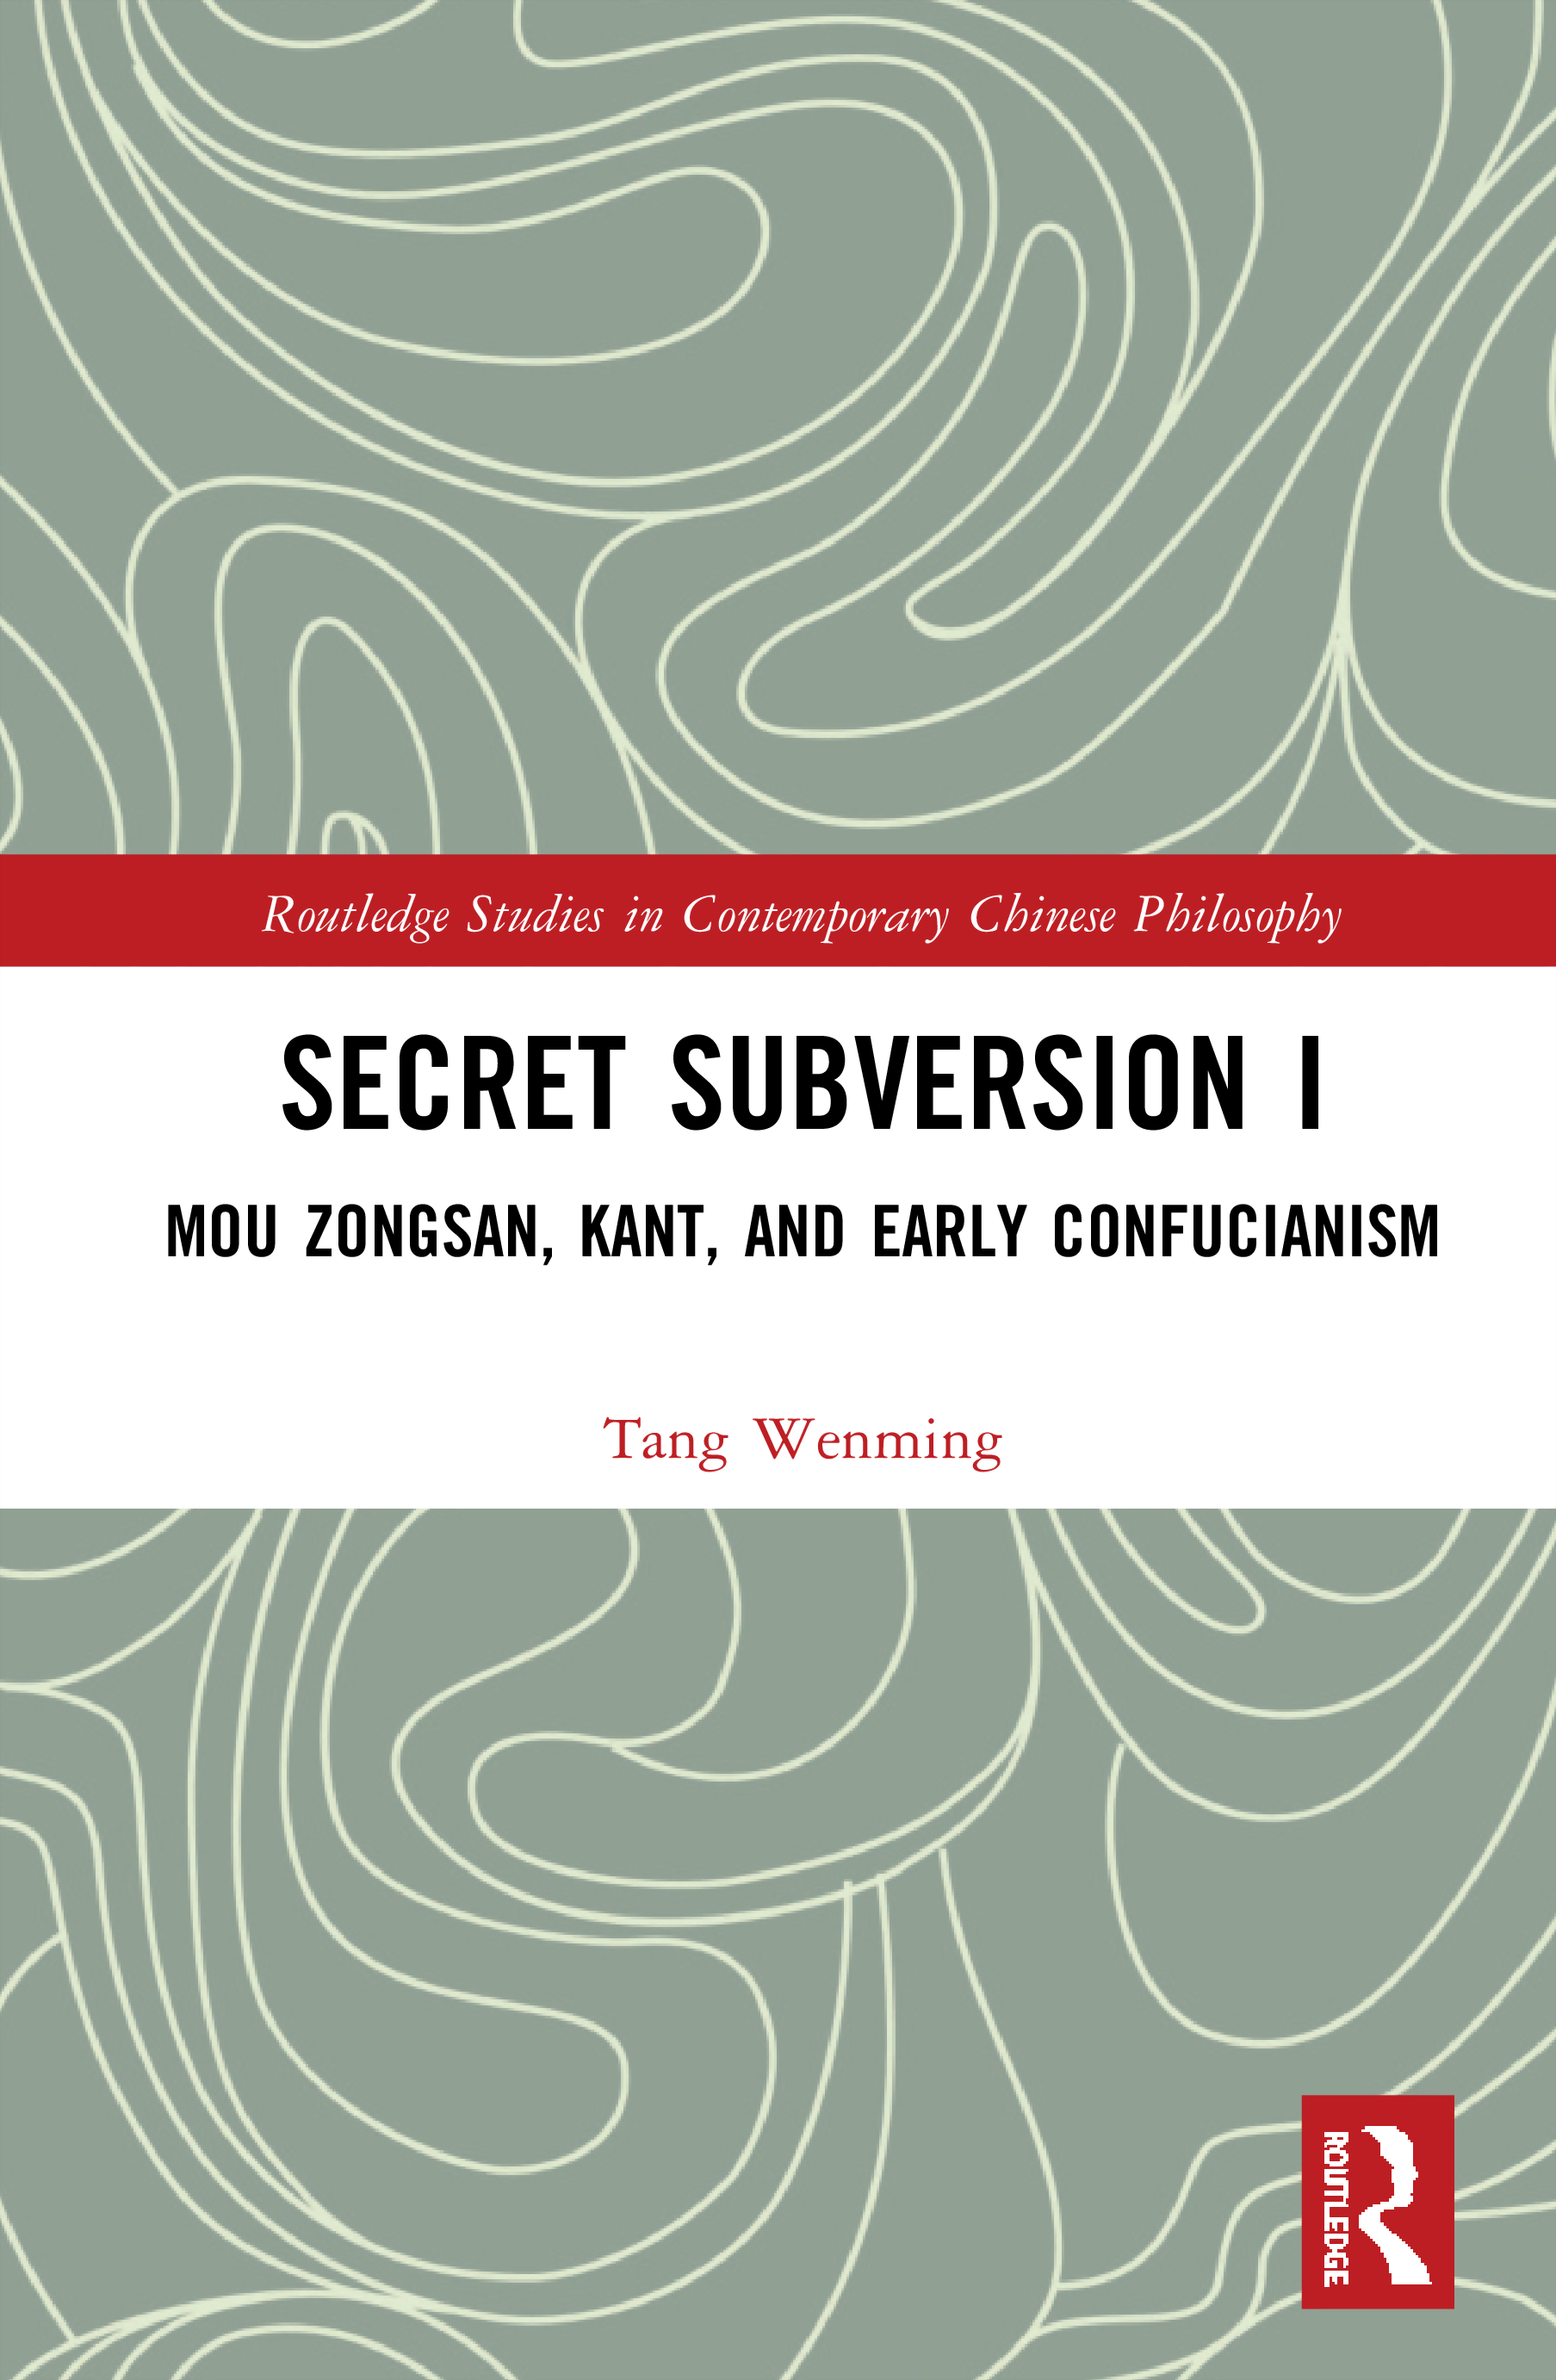 Secret Subversion I: Mou Zongsan, Kant, and Early Confucianism book cover